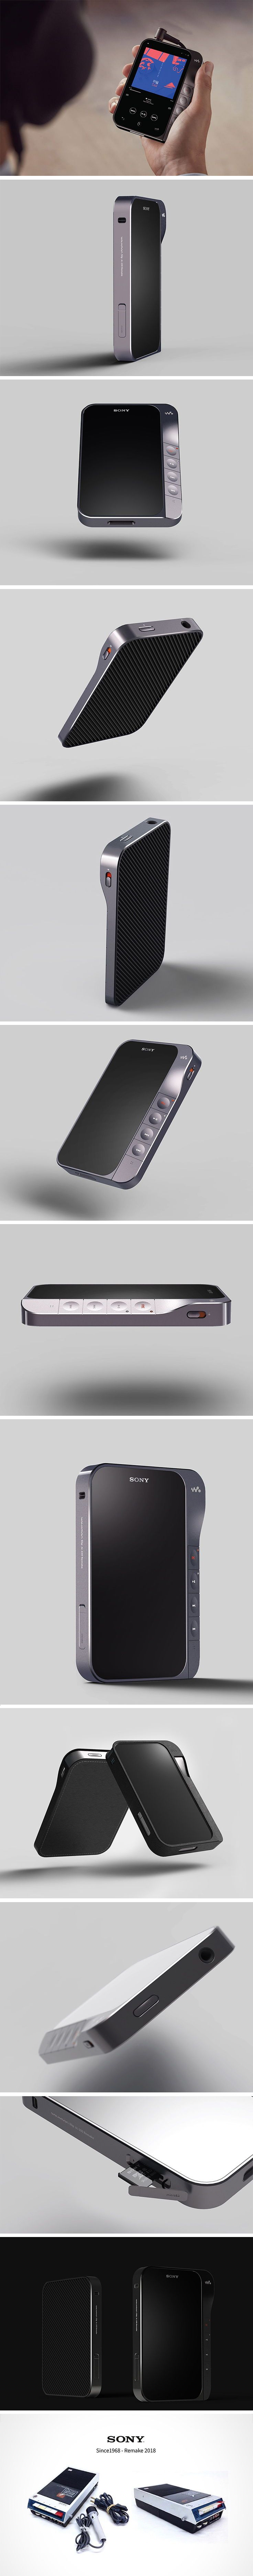 The designers at PDF Haus love a throwback! So, for this #ThrowbackThursday, we're checking out their tribute to the original Sony Walkman. Unlike the one from 1968, it features a solid state drive, digital screen and is about a tenth of the size! Compared to minuscule, modern MP3 players, however, this smartphone-size remake is still a clunker! It features a tactile backside for gripping and oversized control buttons that are easily accessible by the thumb.